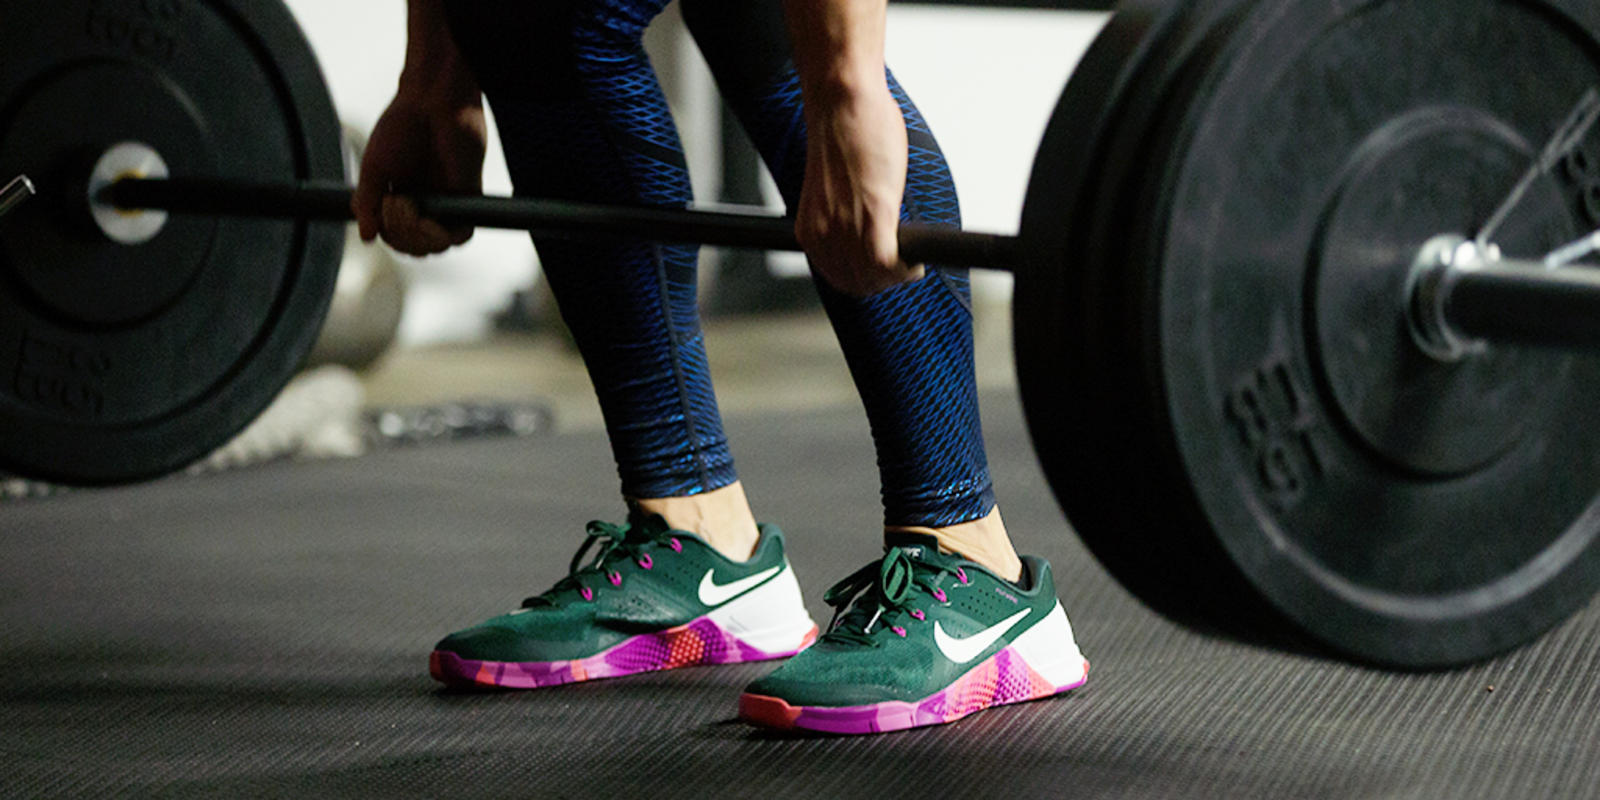 Rory-M_Shoes-close-up-deadlift_02